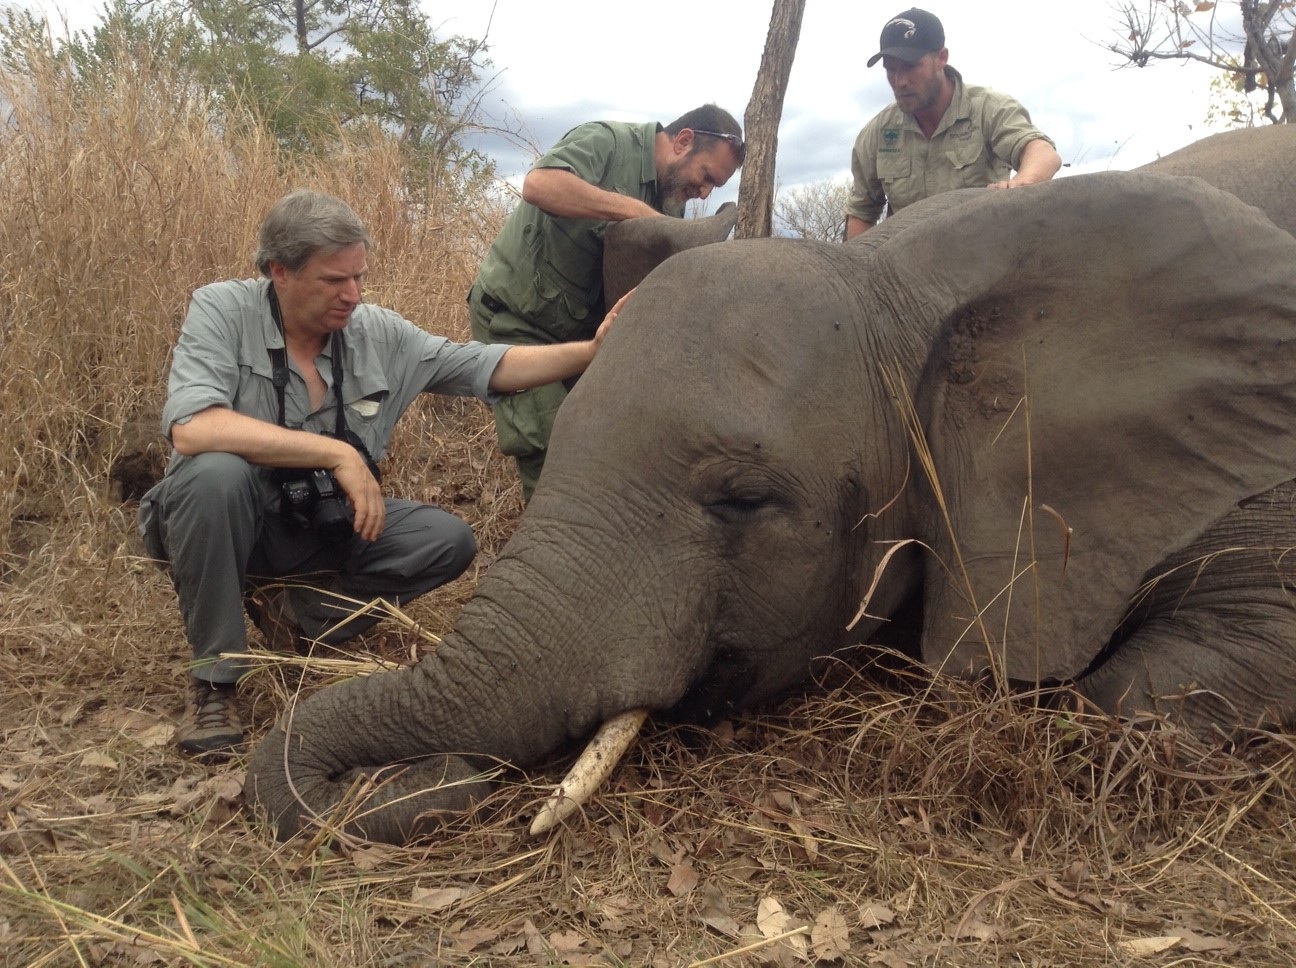 Elephants And Other Wildlife Rely On The World S Protected